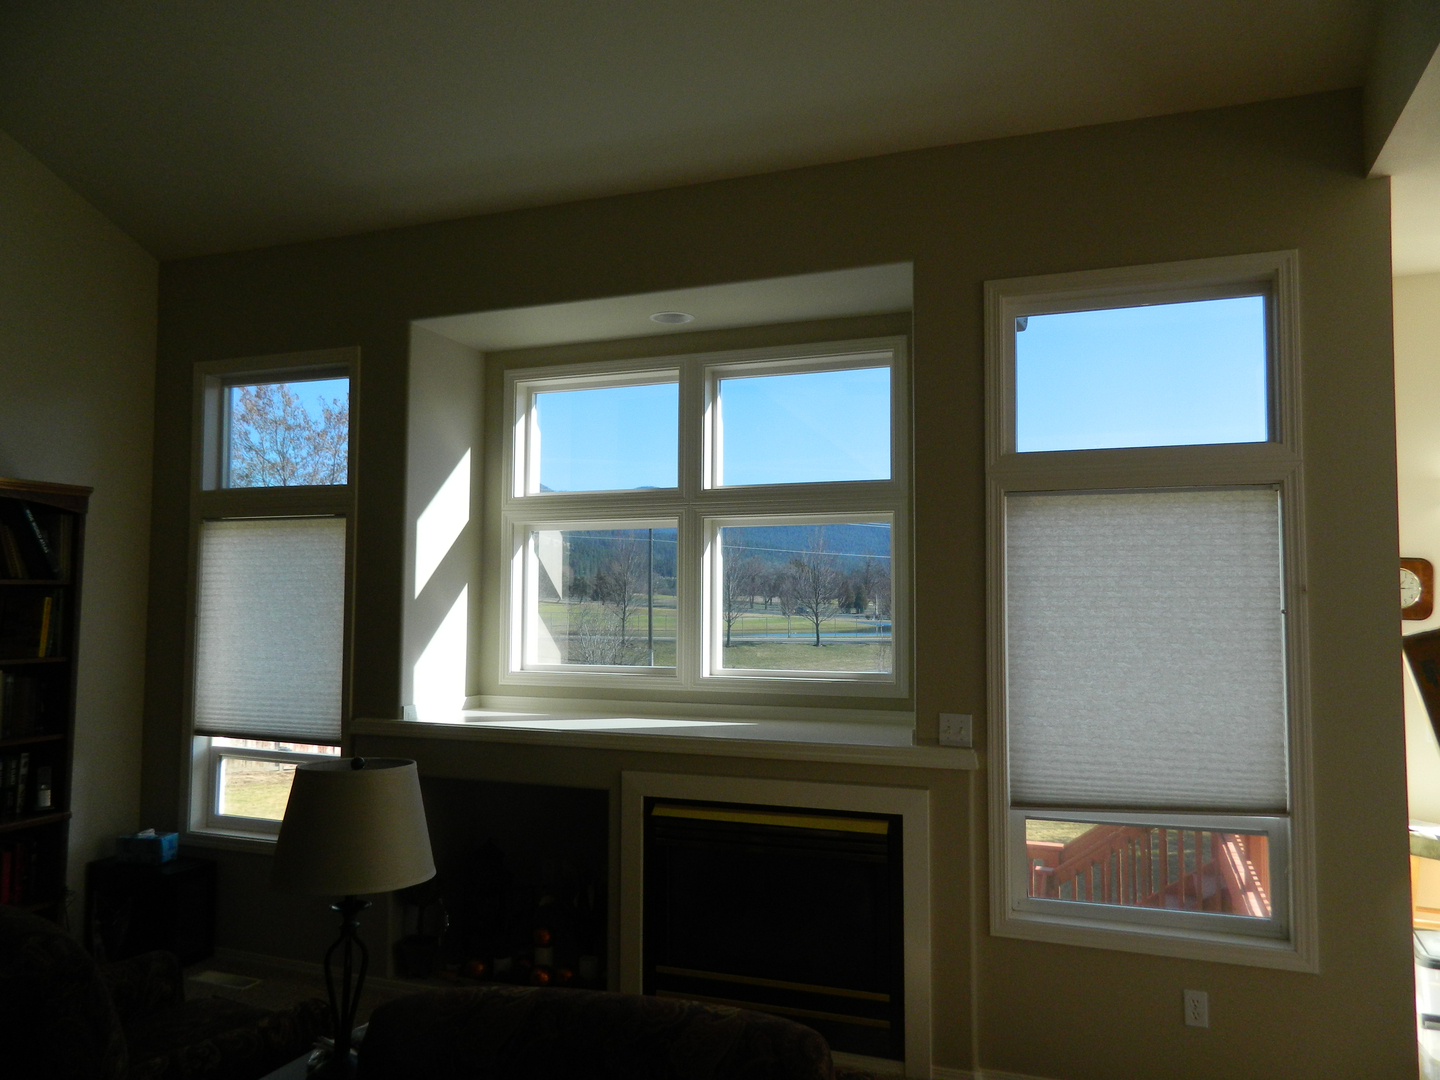 Silver Films for Solar Control & Daytime Privacy | Therma Shield